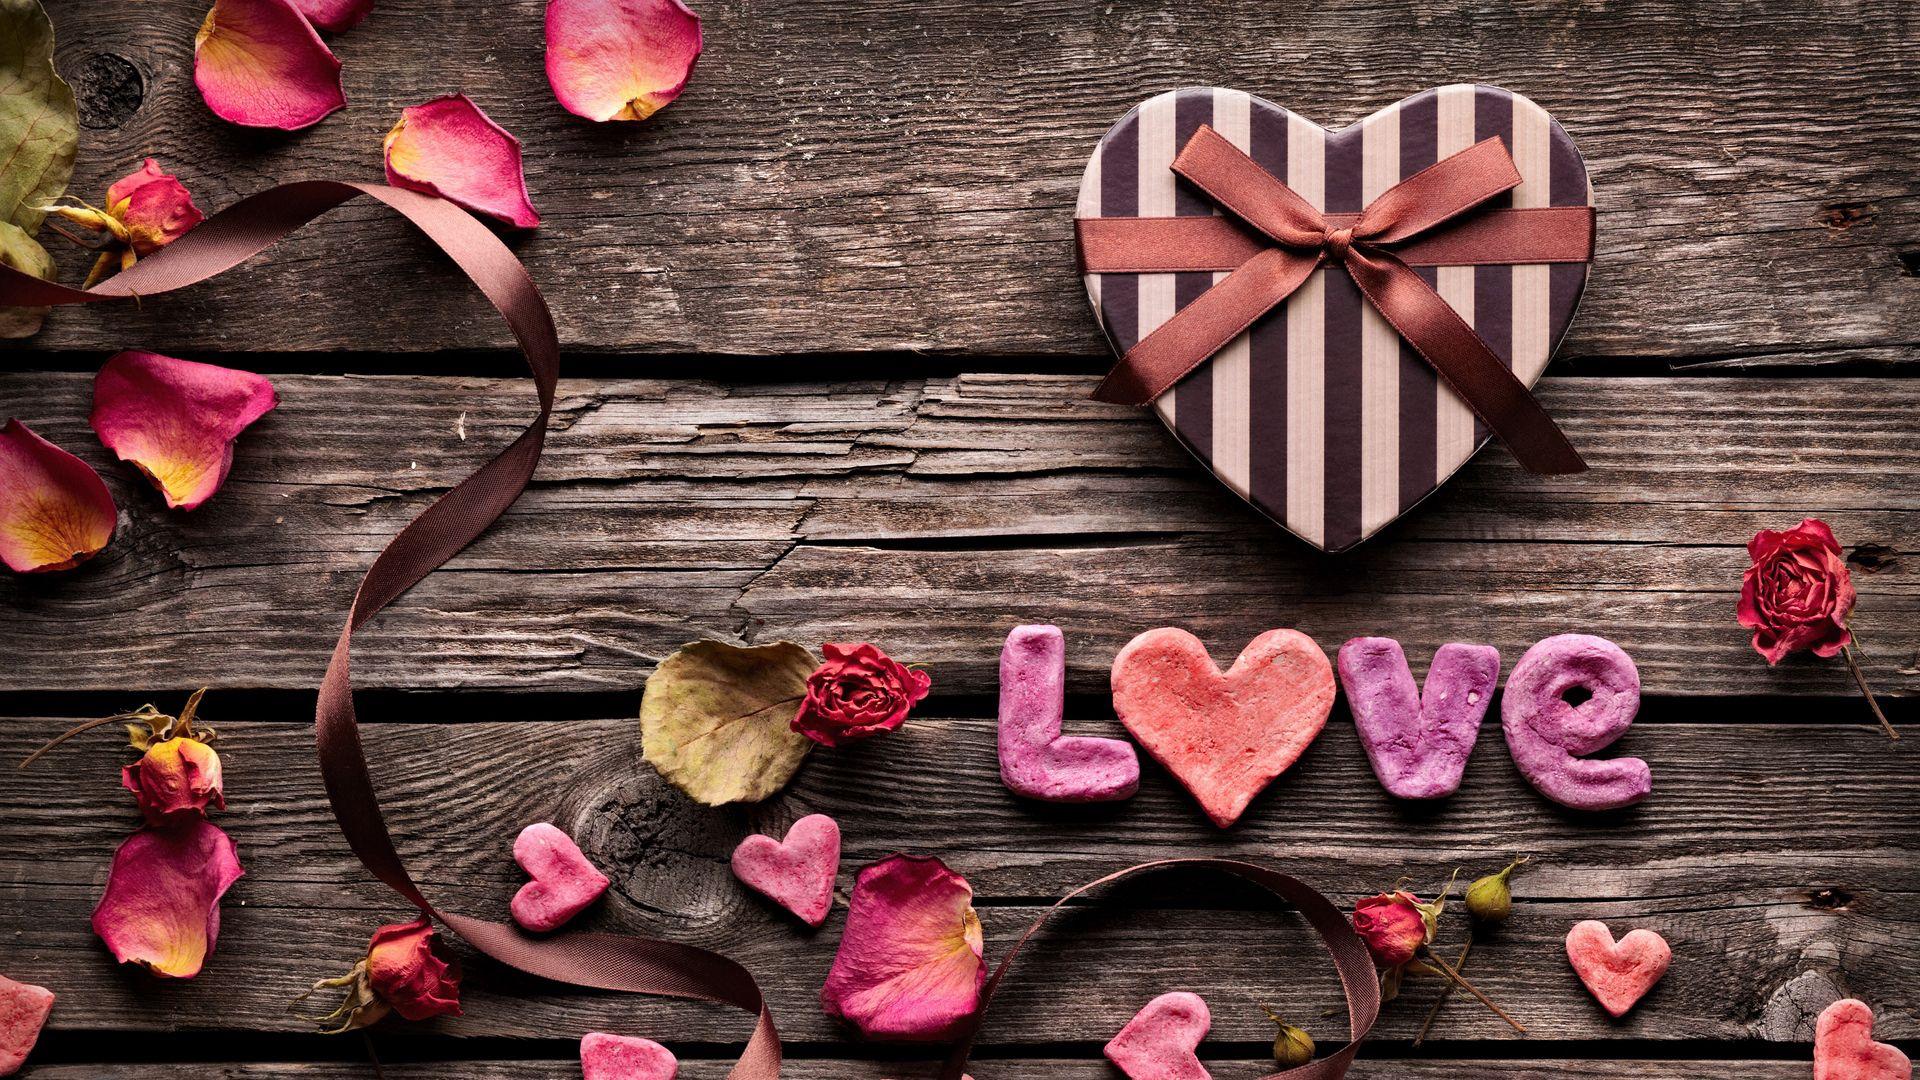 143524 download wallpaper Love, Heart, Box, Petals, Table screensavers and pictures for free